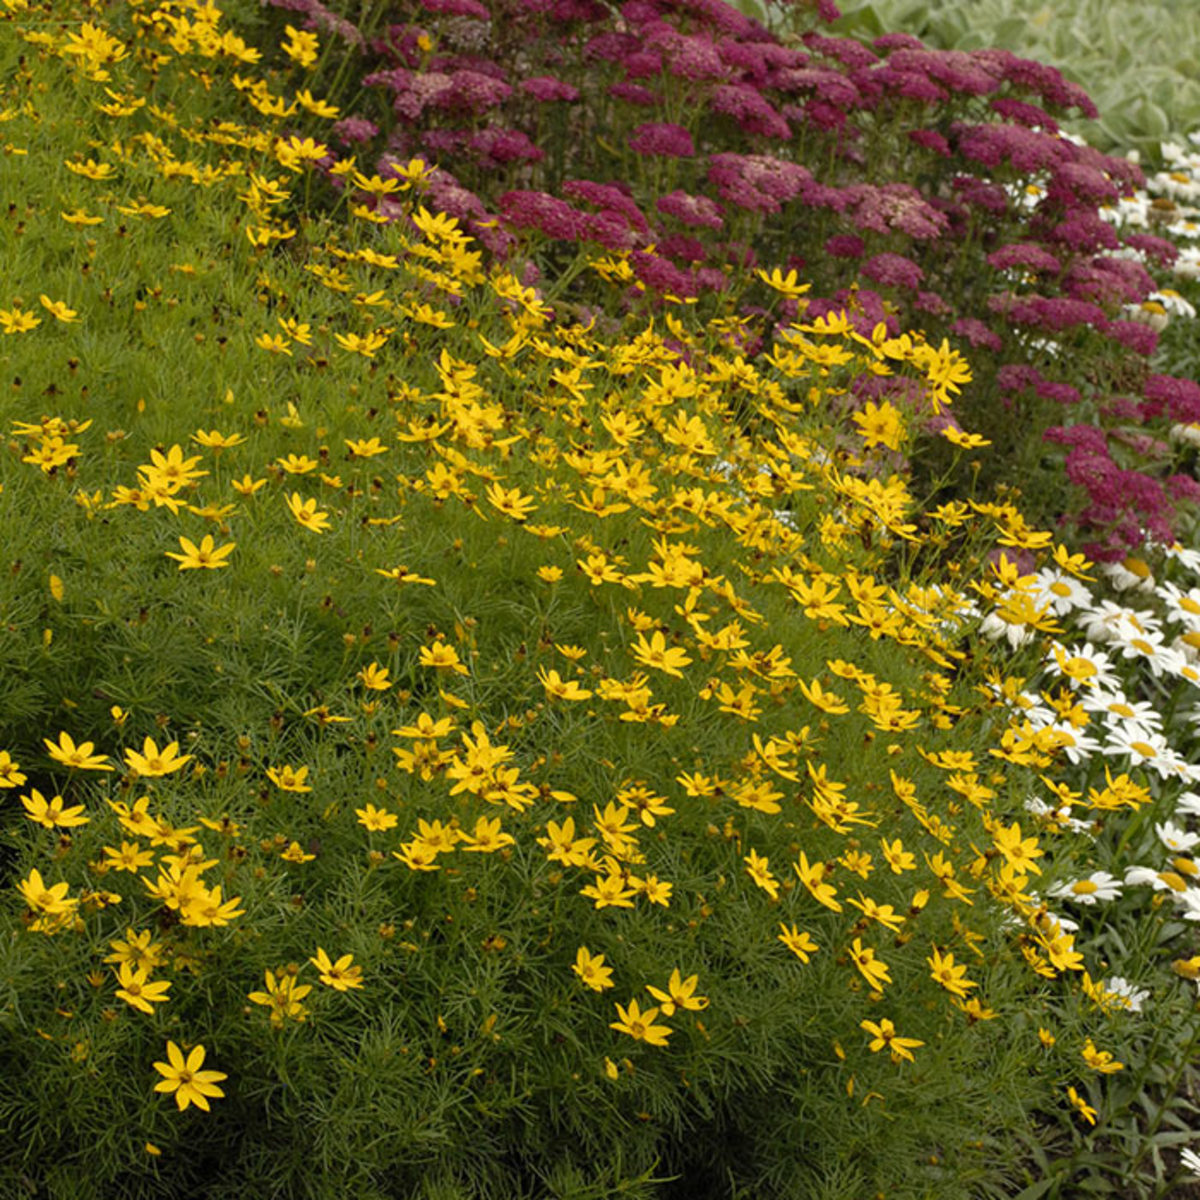 Coreopsis verticillata 'Zagreb' offers bright yellow flowers throughout the summer.